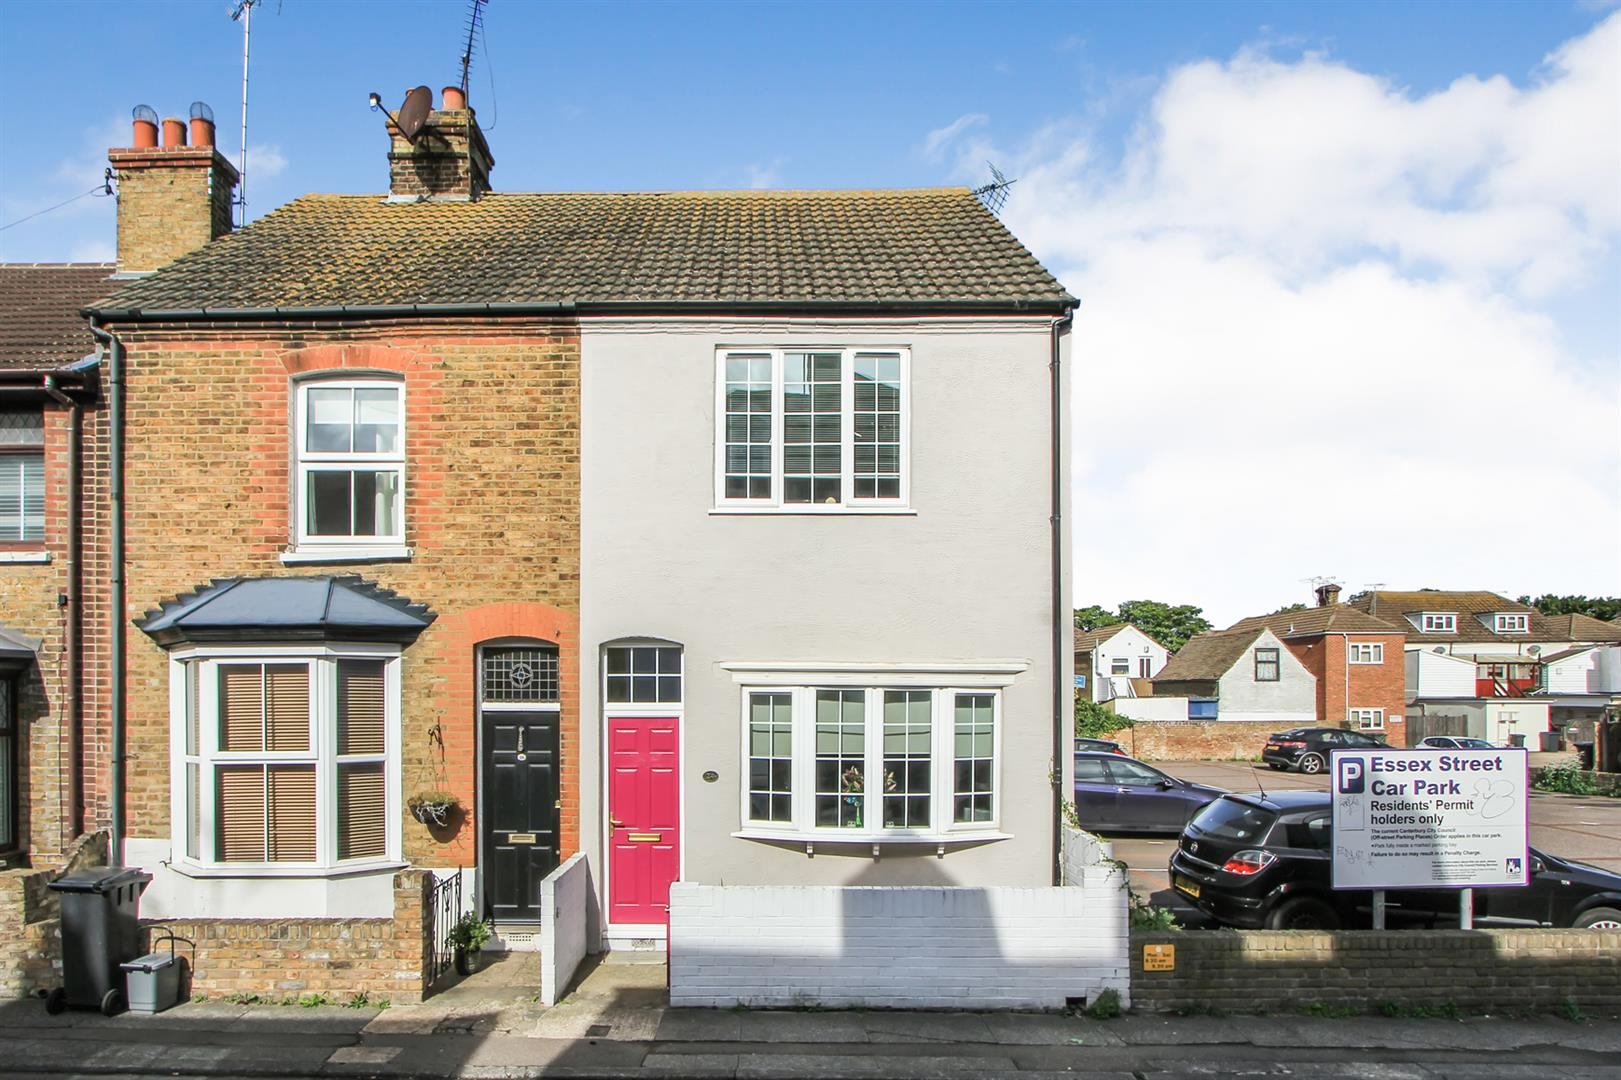 3 Bedrooms Terraced House for sale in Essex Street, Whitstable